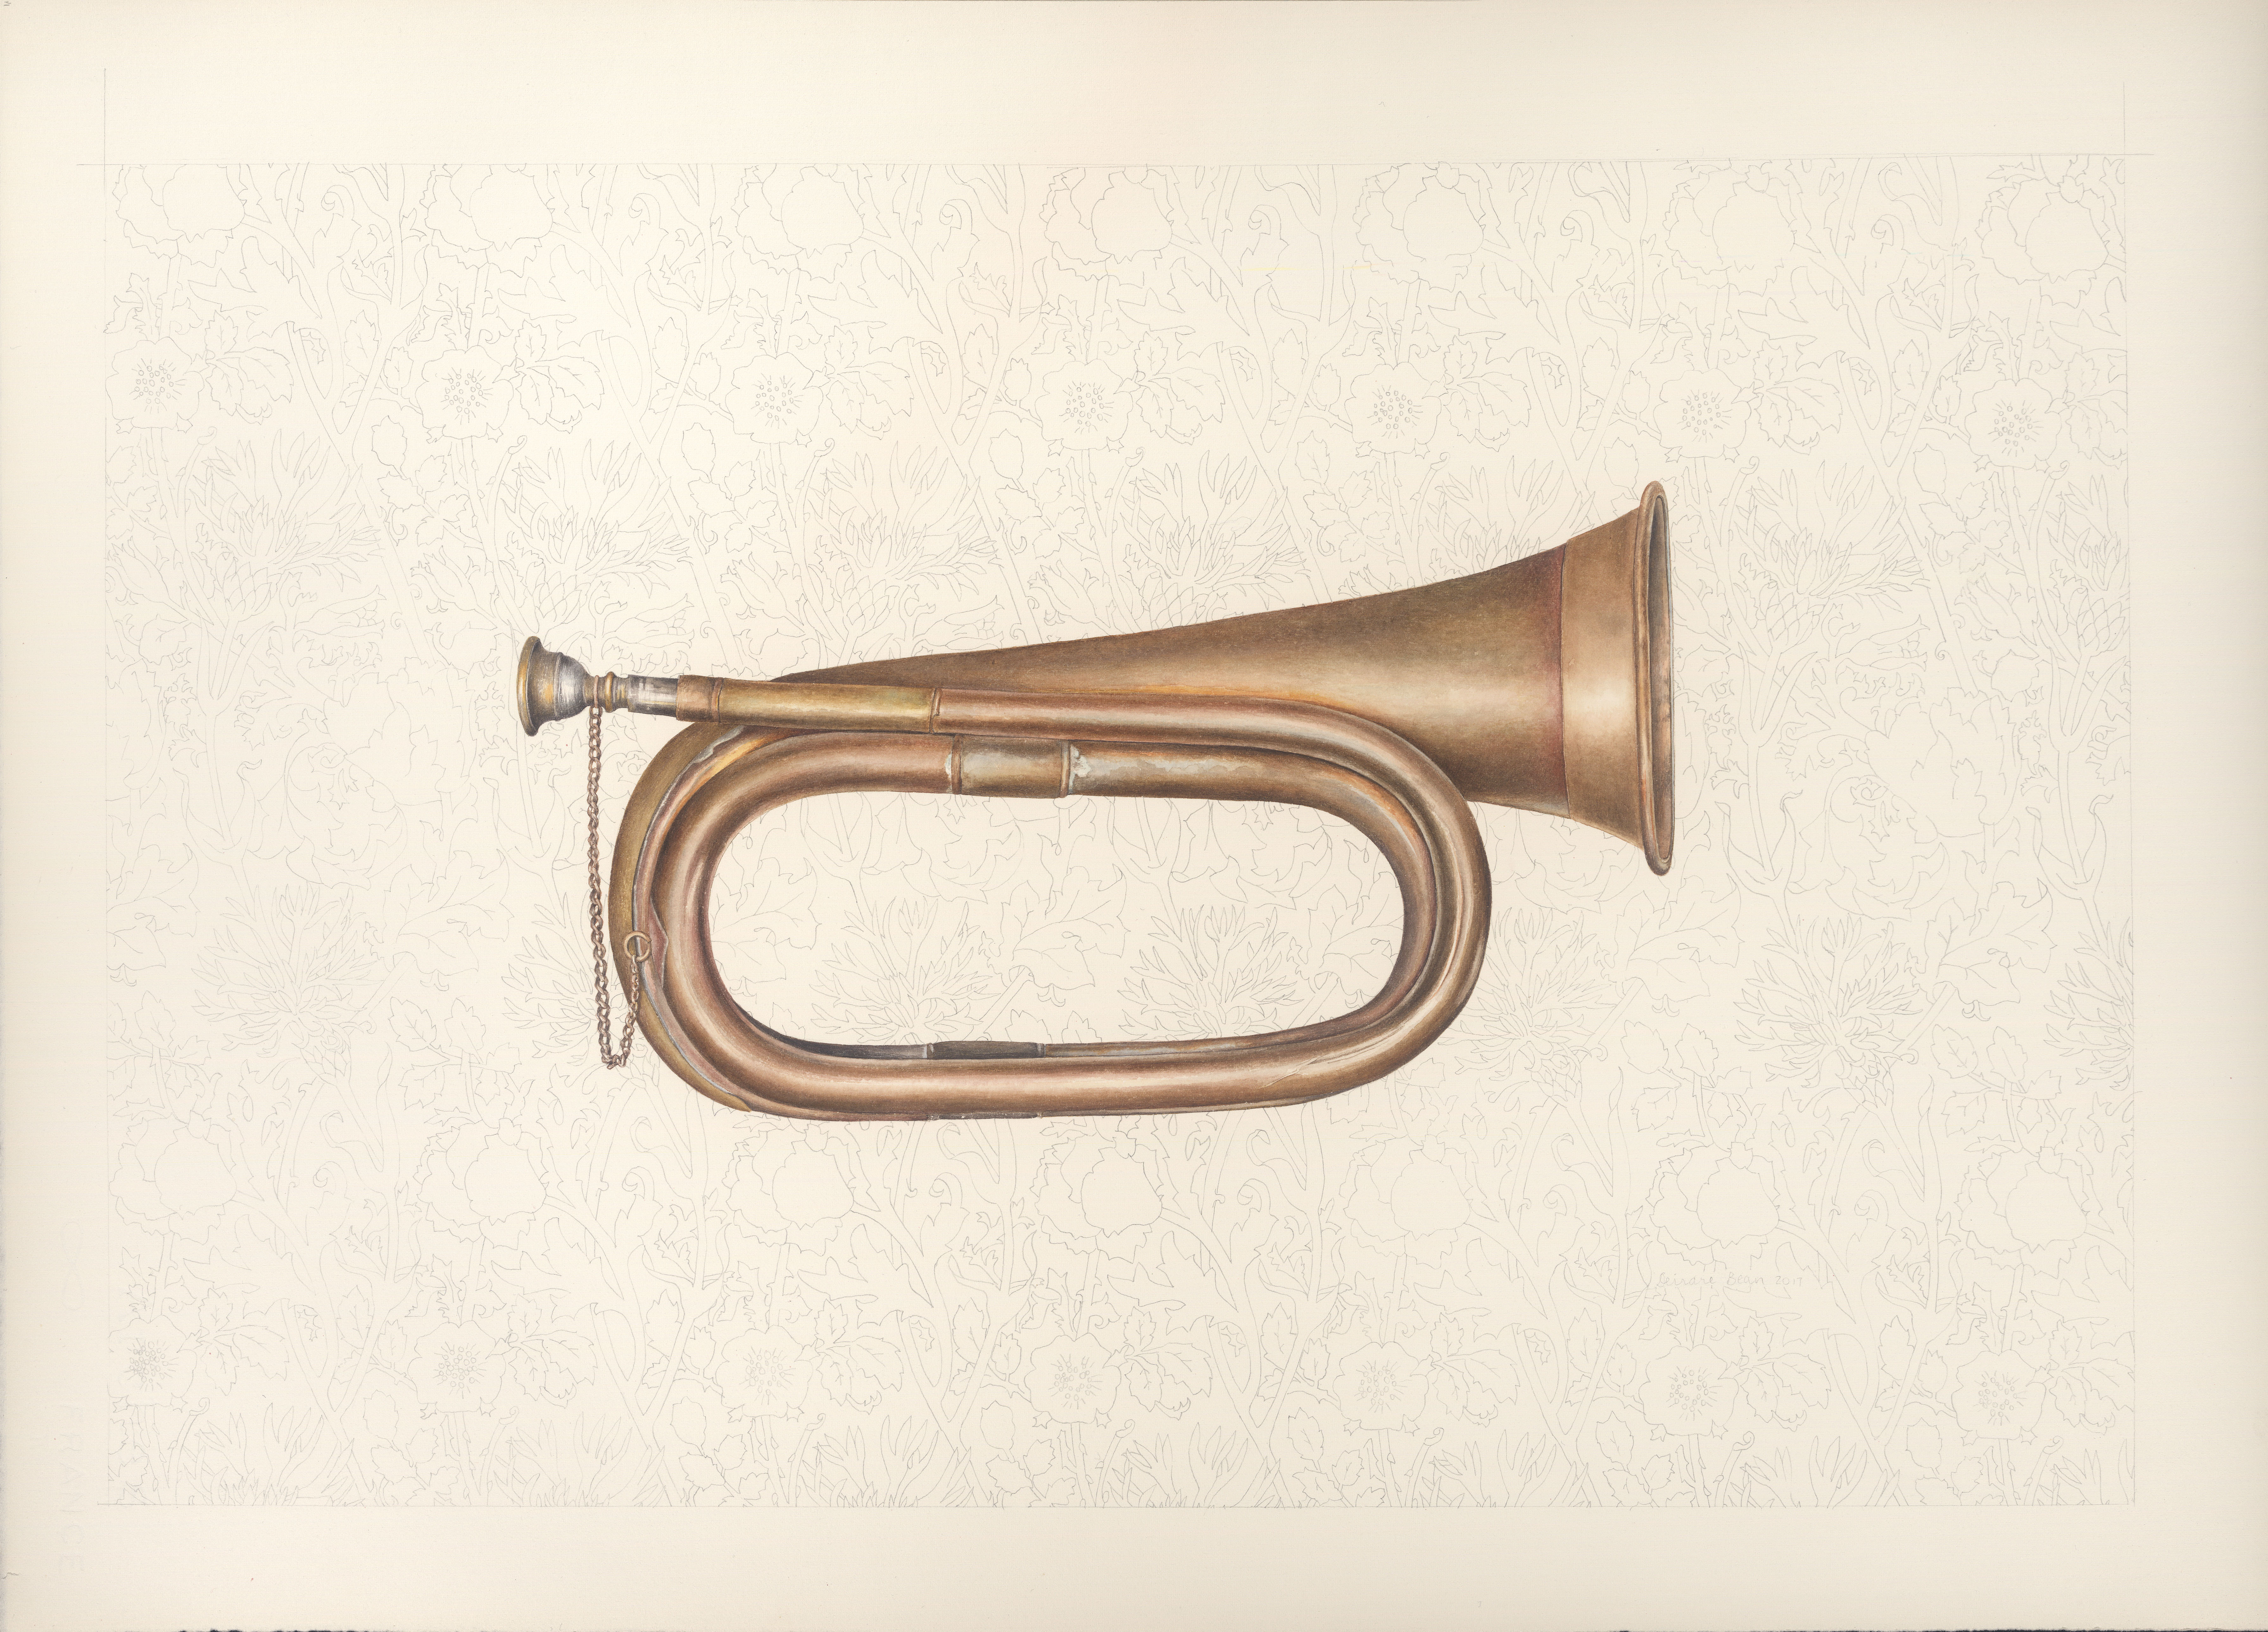 Call to home (bugle)